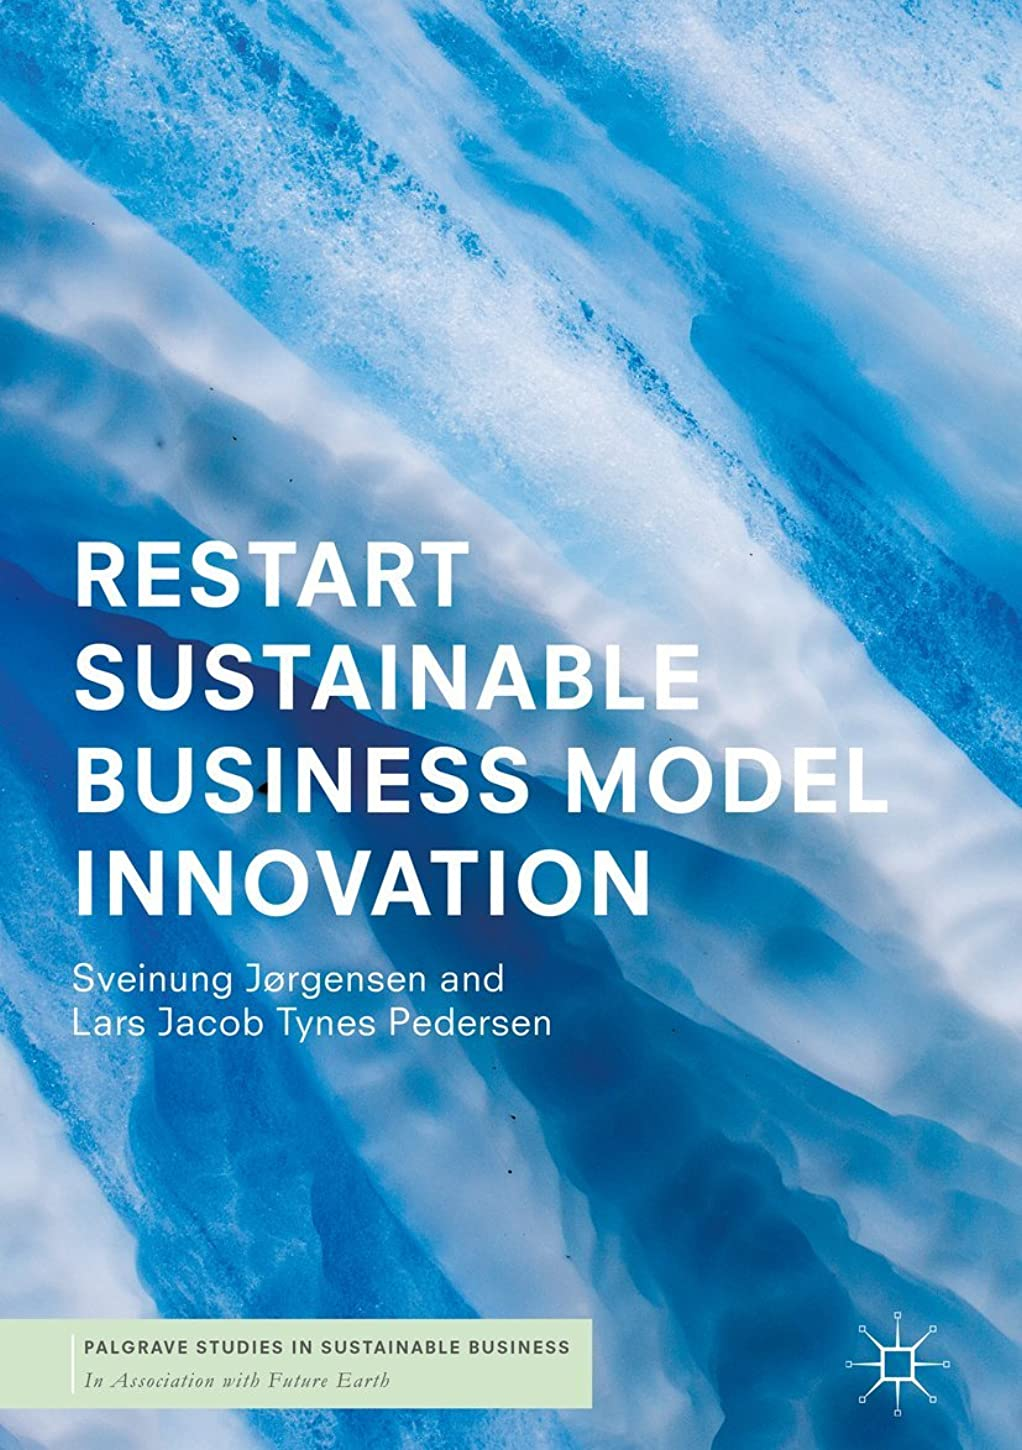 いたずらむしろ大事にするRESTART Sustainable Business Model Innovation (Palgrave Studies in Sustainable Business In Association with Future Earth) (English Edition)